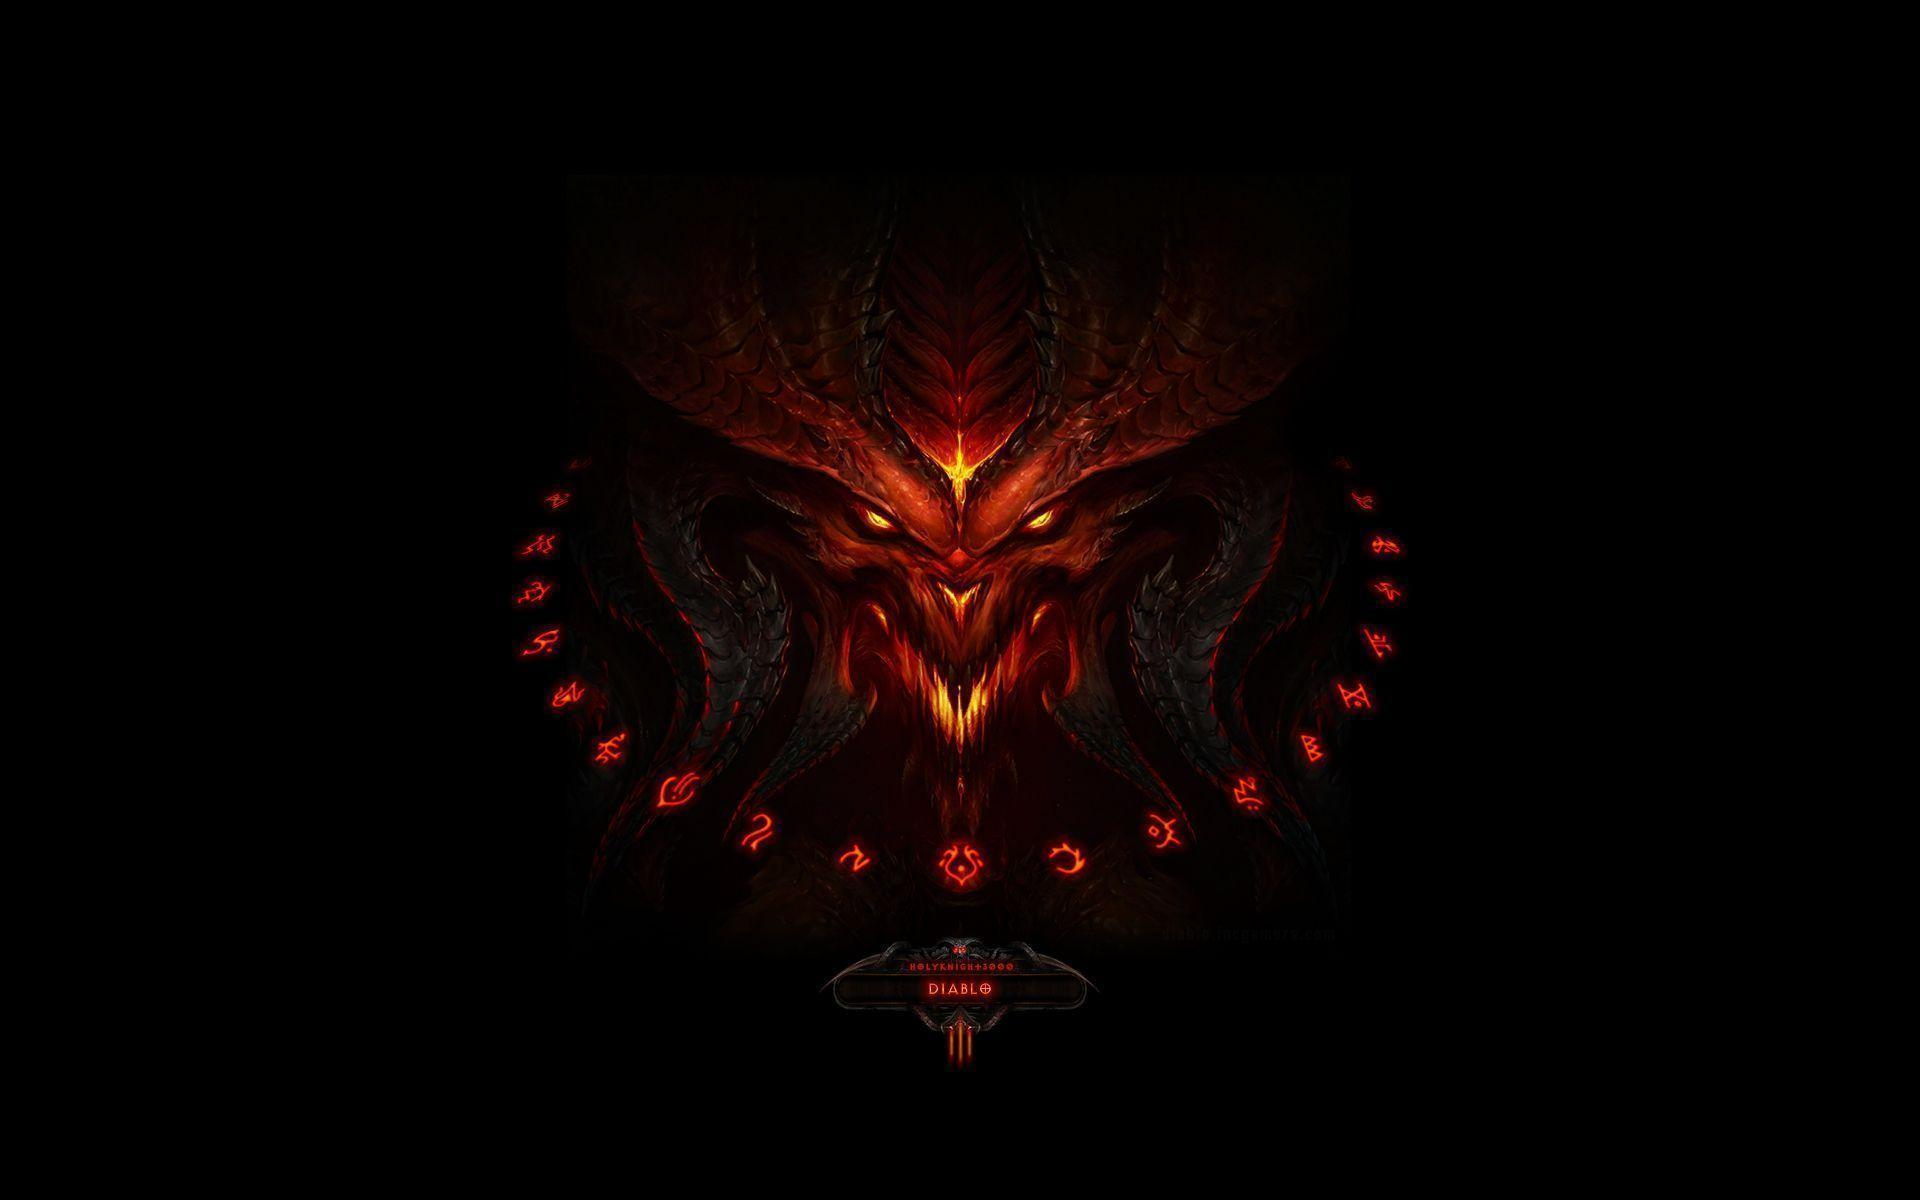 Diablo 3 High Definition Wallpaper Picture : New Game photos